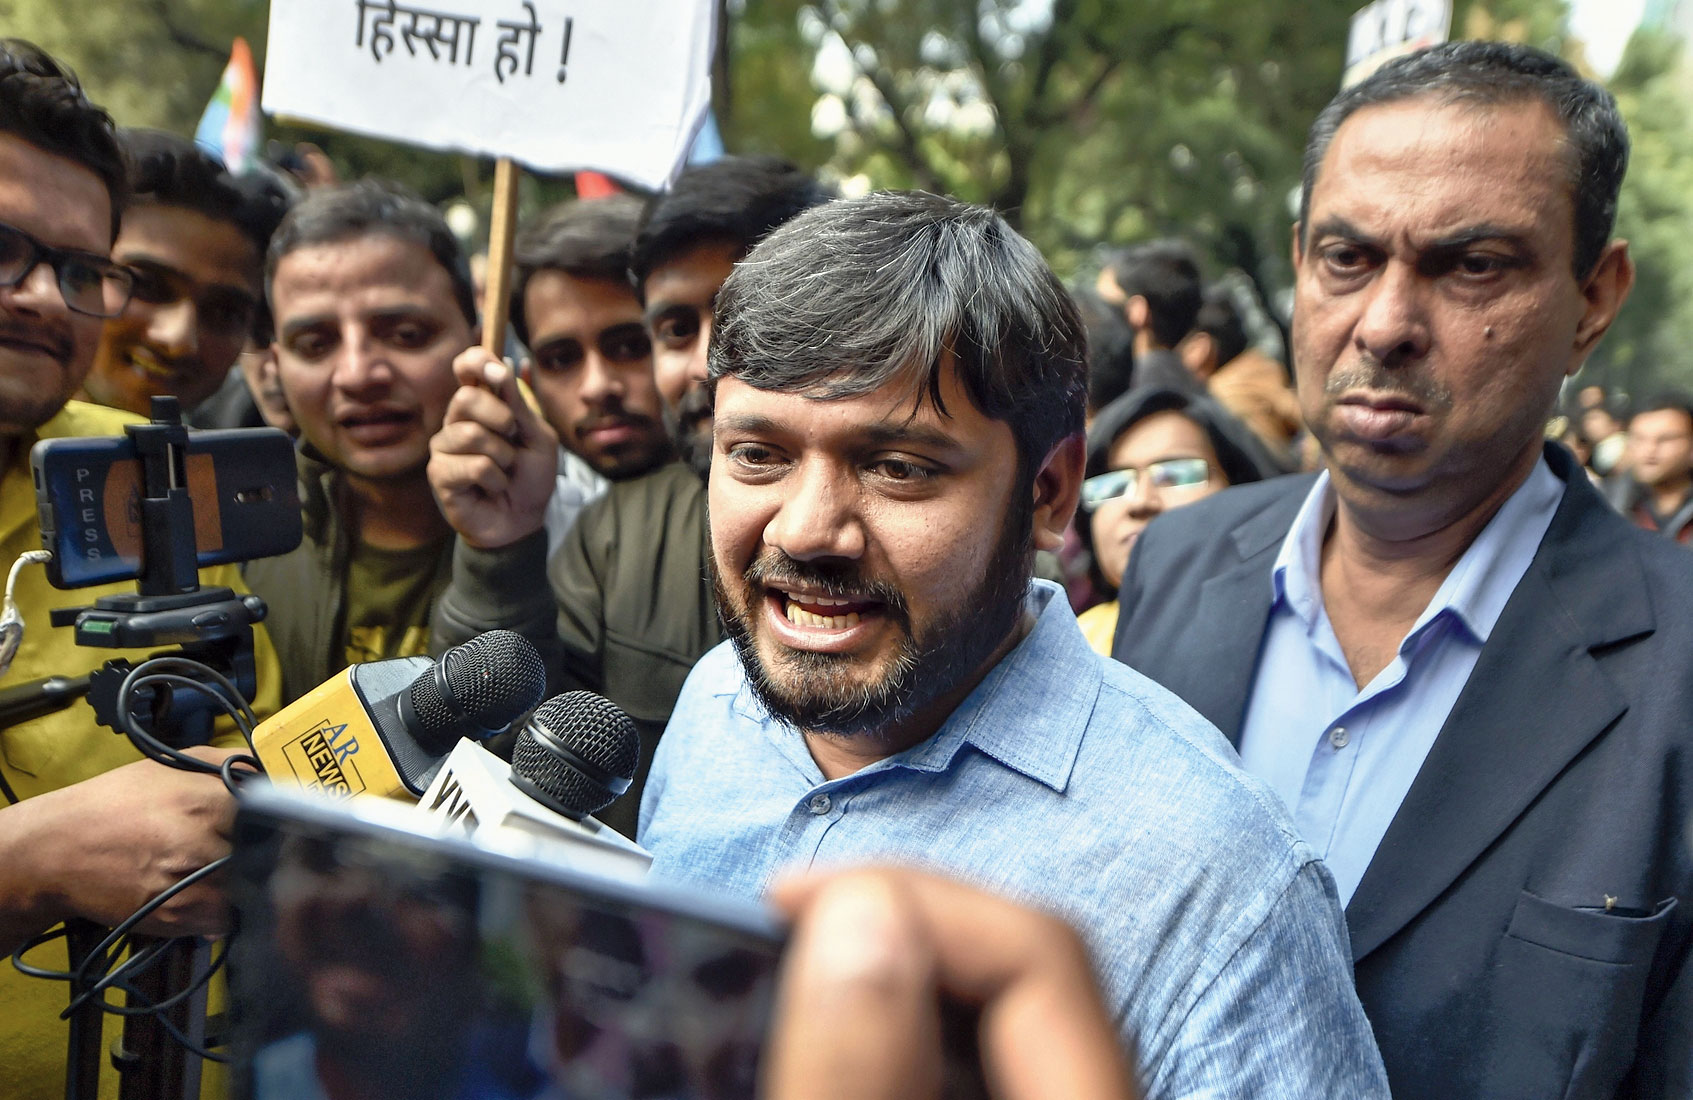 JNU former president Kanhaiya Kumar at the protest in New Delhi.